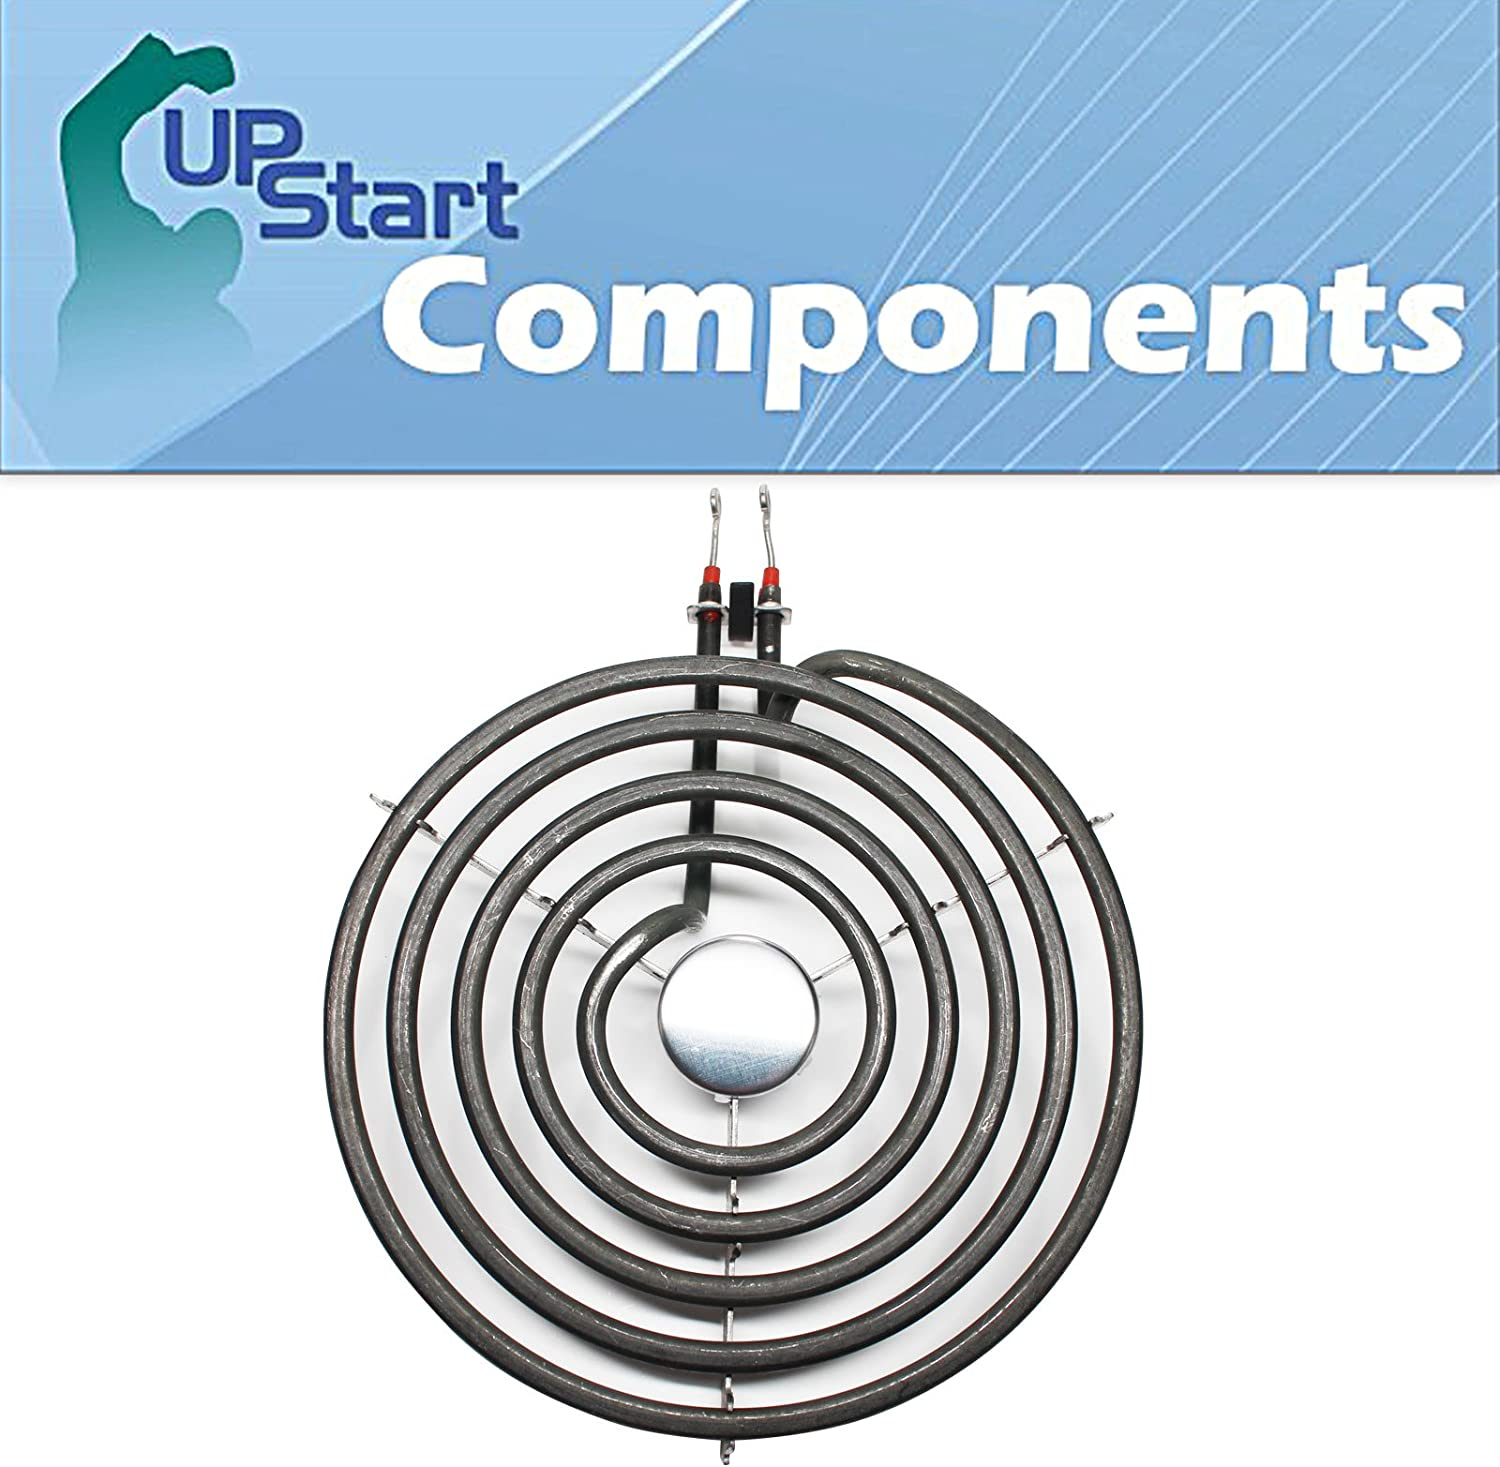 Surface Burner 8 inch 5 Turns Element Replacement for Jenn-Air, Amana, Maytag, Whirlpool - Compatible with Jenn-Air A100, Amana ARR6400WW, Jenn-Air A100B, Maytag CRE7500ACW, Whirlpool RF263LXTQ3